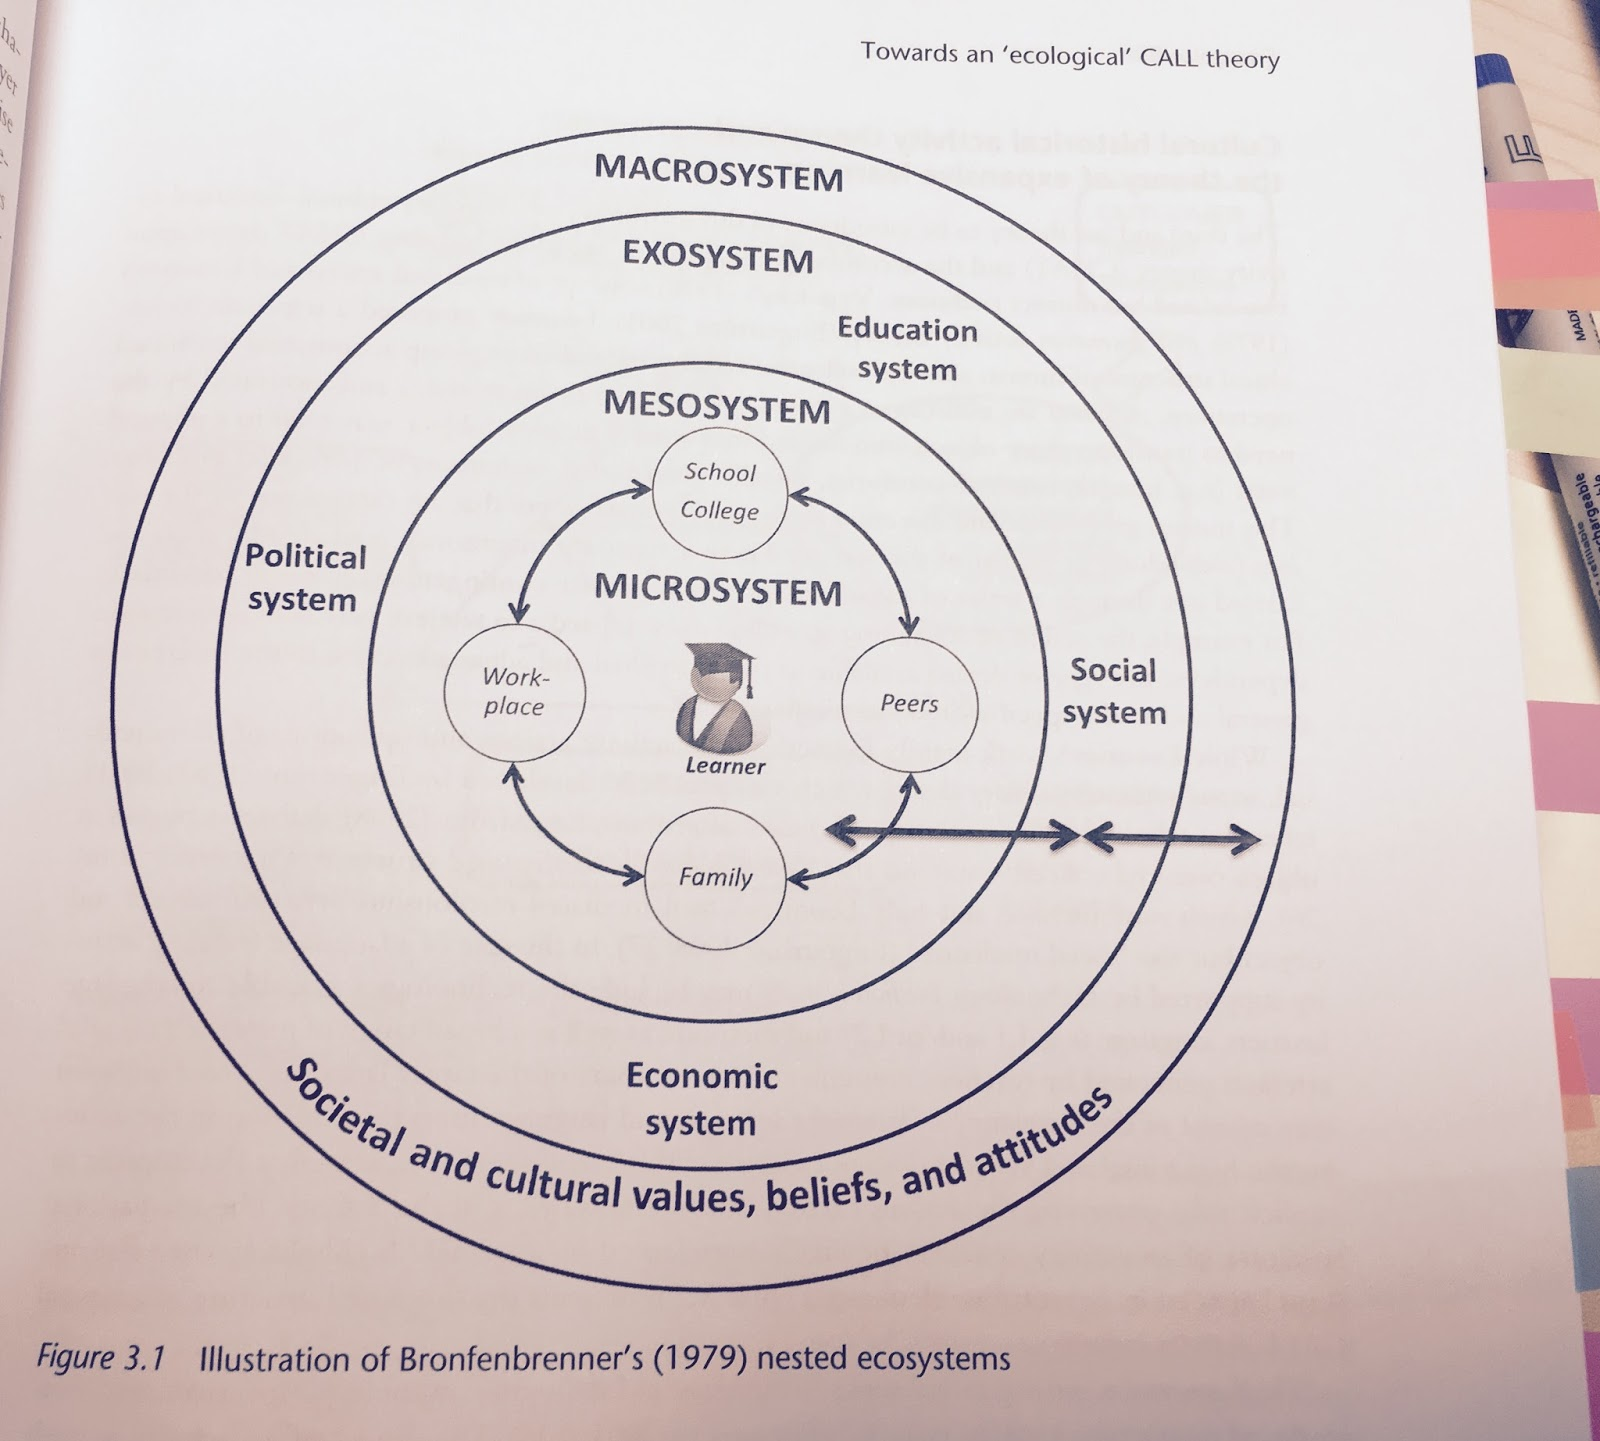 Call theories reflections on chapters 2 and 3 of the routledge figure 1 illustration of bronfenbrenners ecosystem in blin 2016 p43 ccuart Gallery